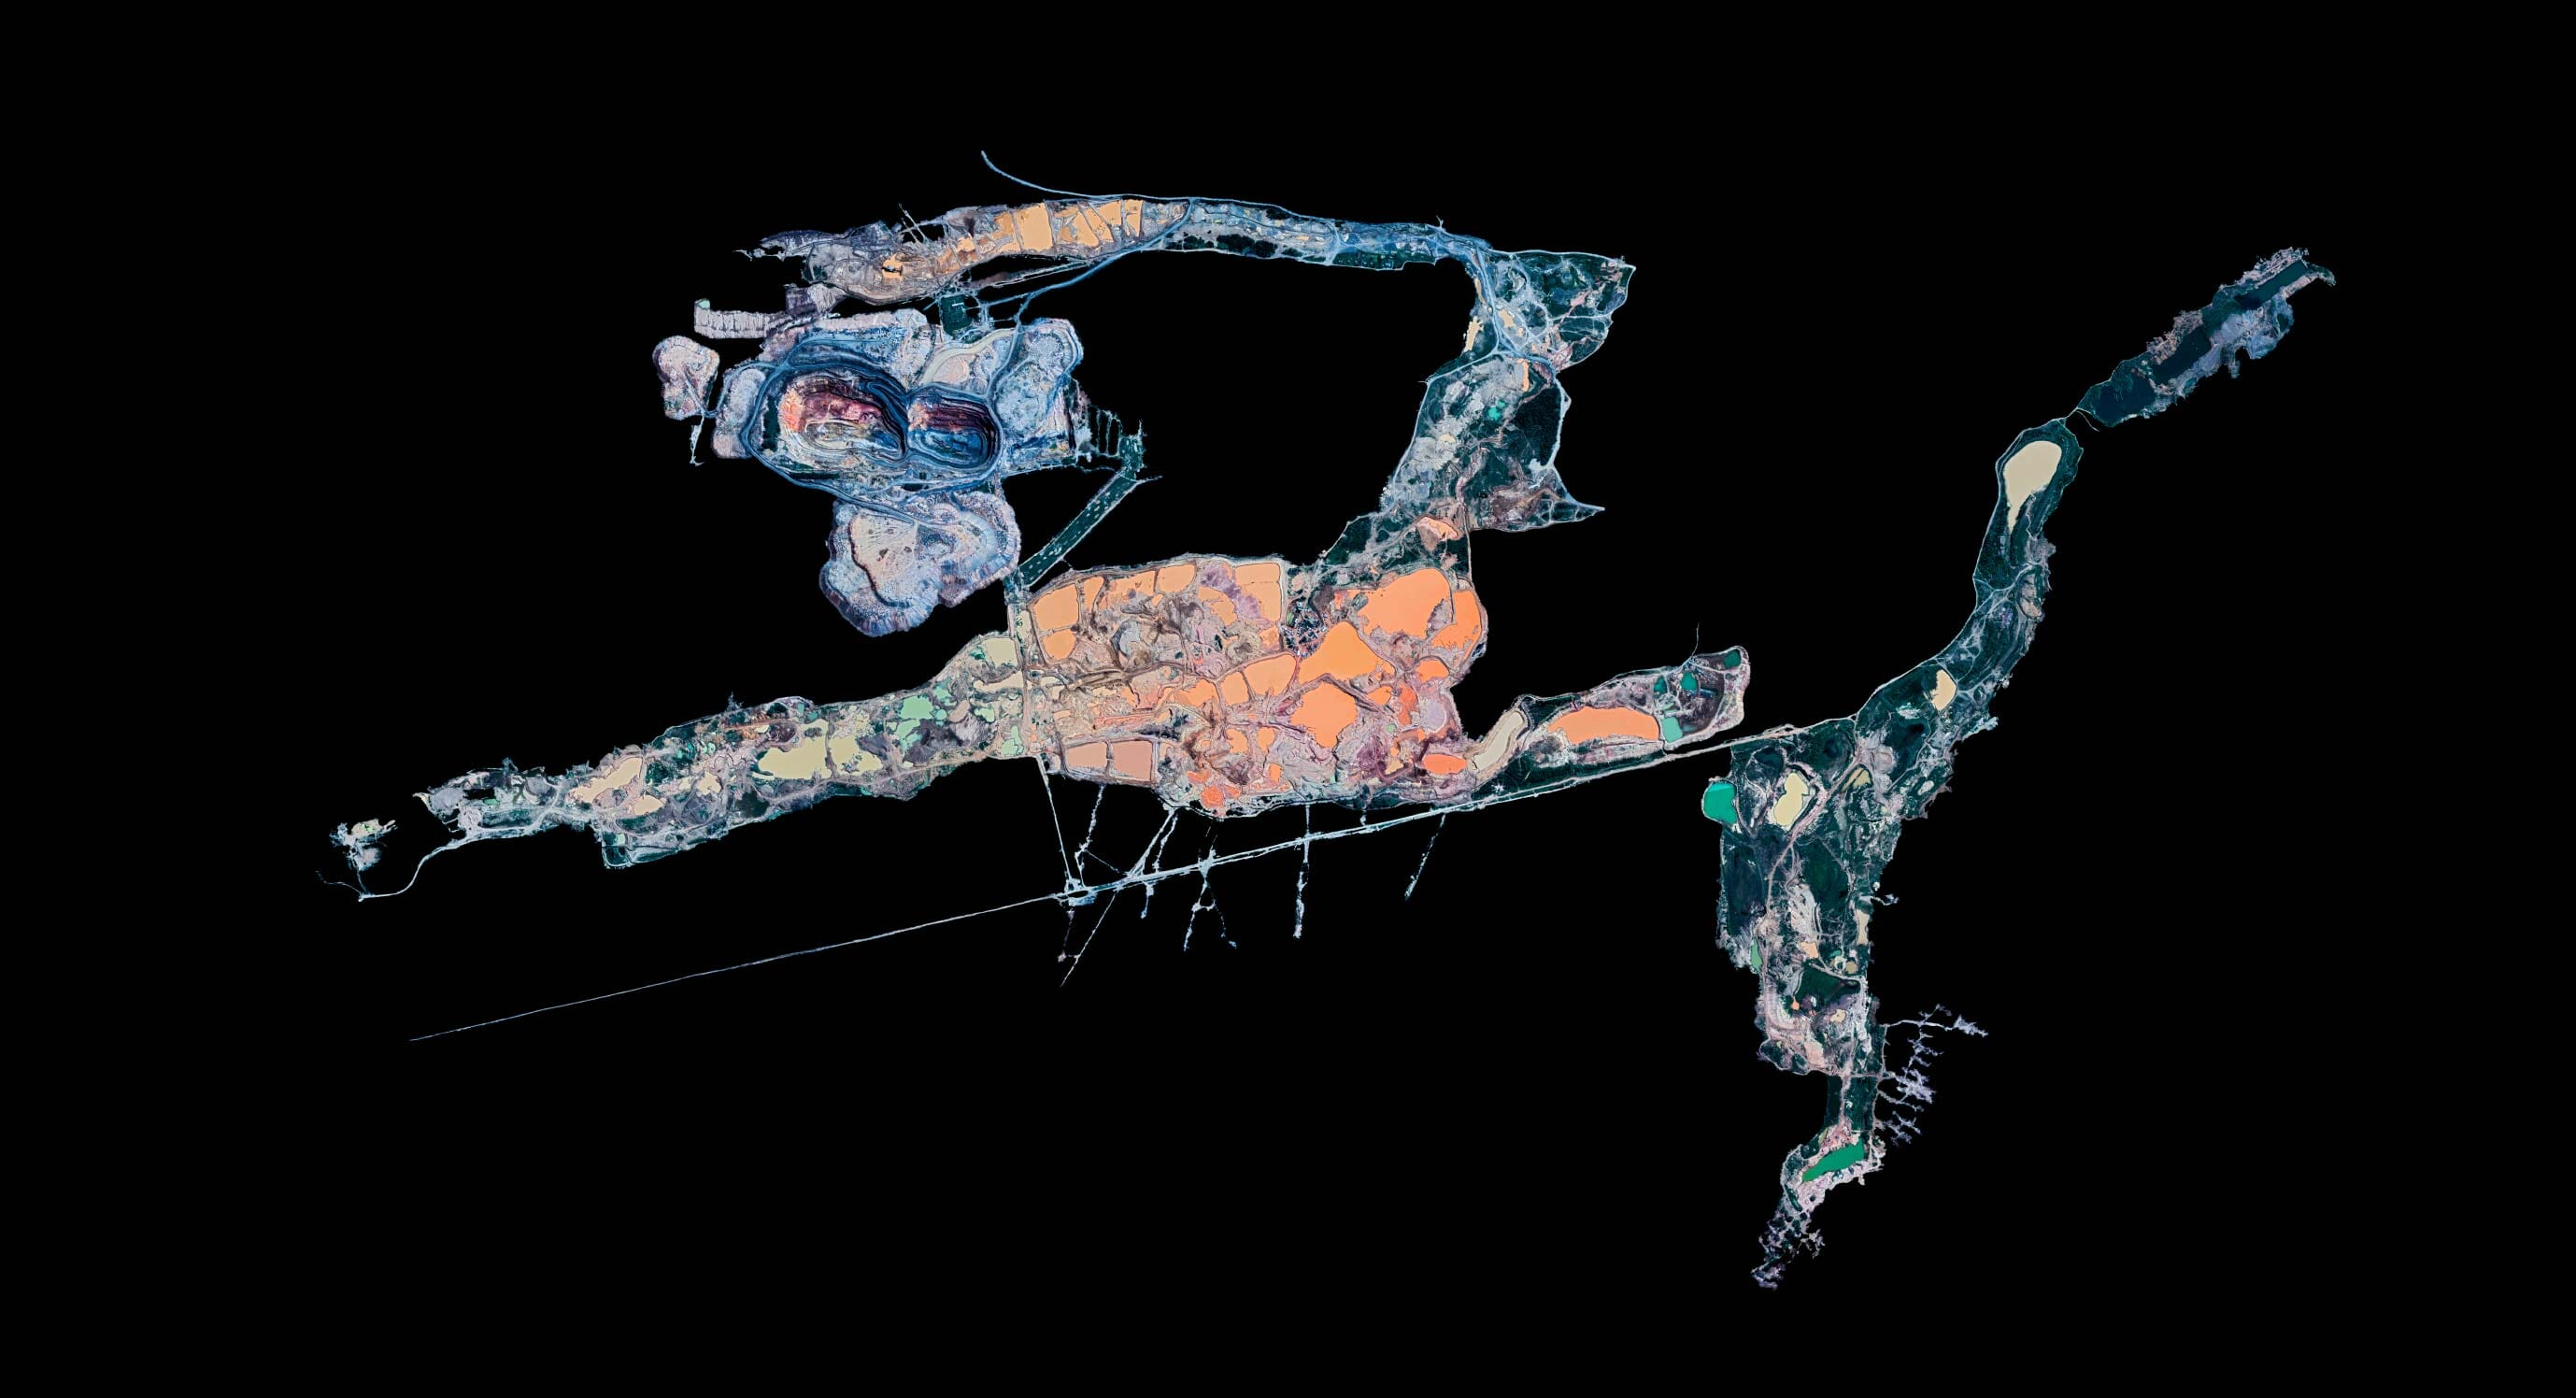 ULTRADISTANCIA: Monsters Of Mine finds creatures in satellite images